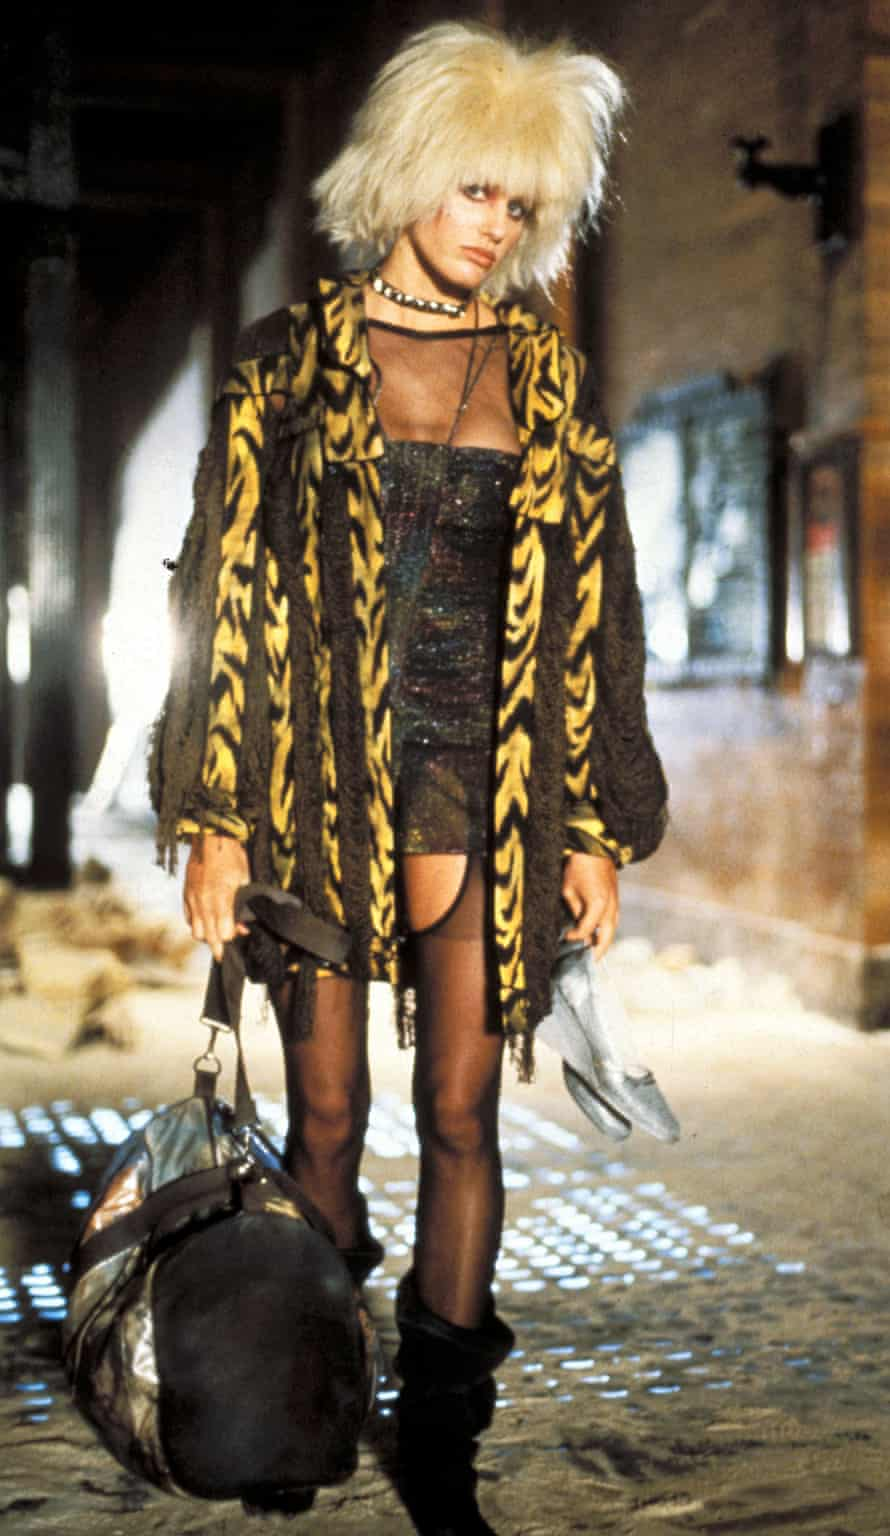 Pris, a replicant, in Bladerunner